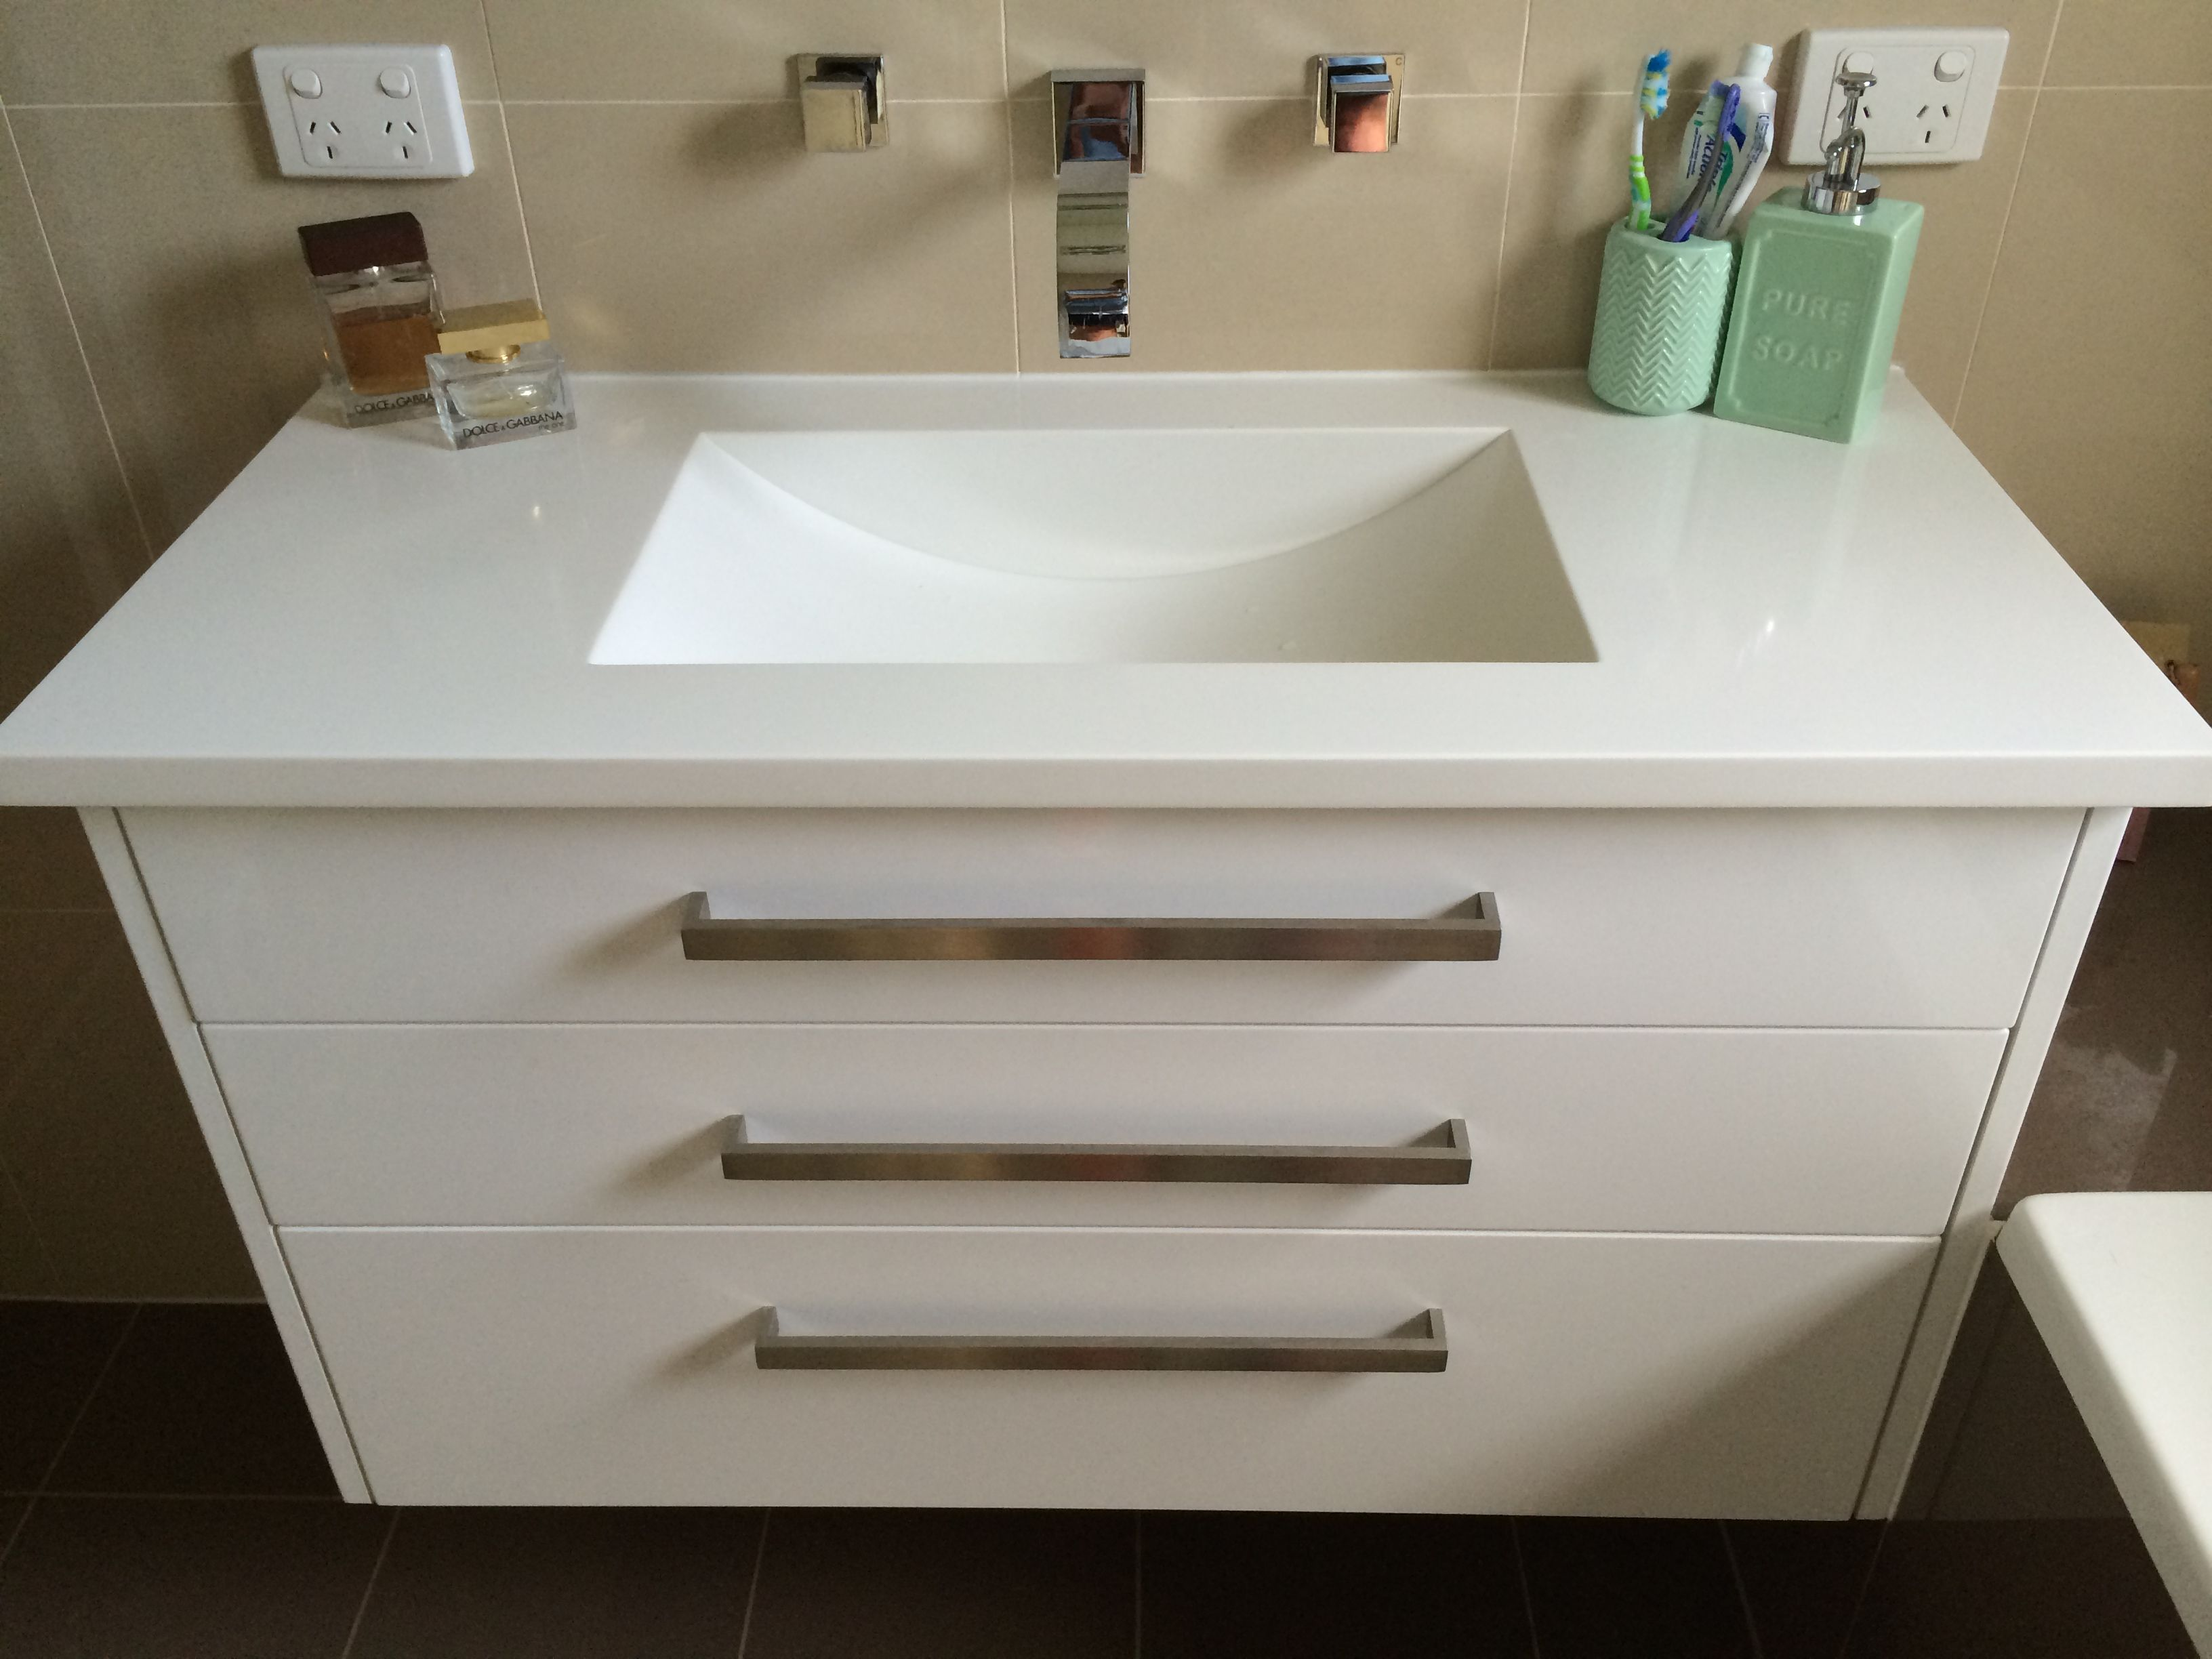 Pin on Vanities/bathrooms